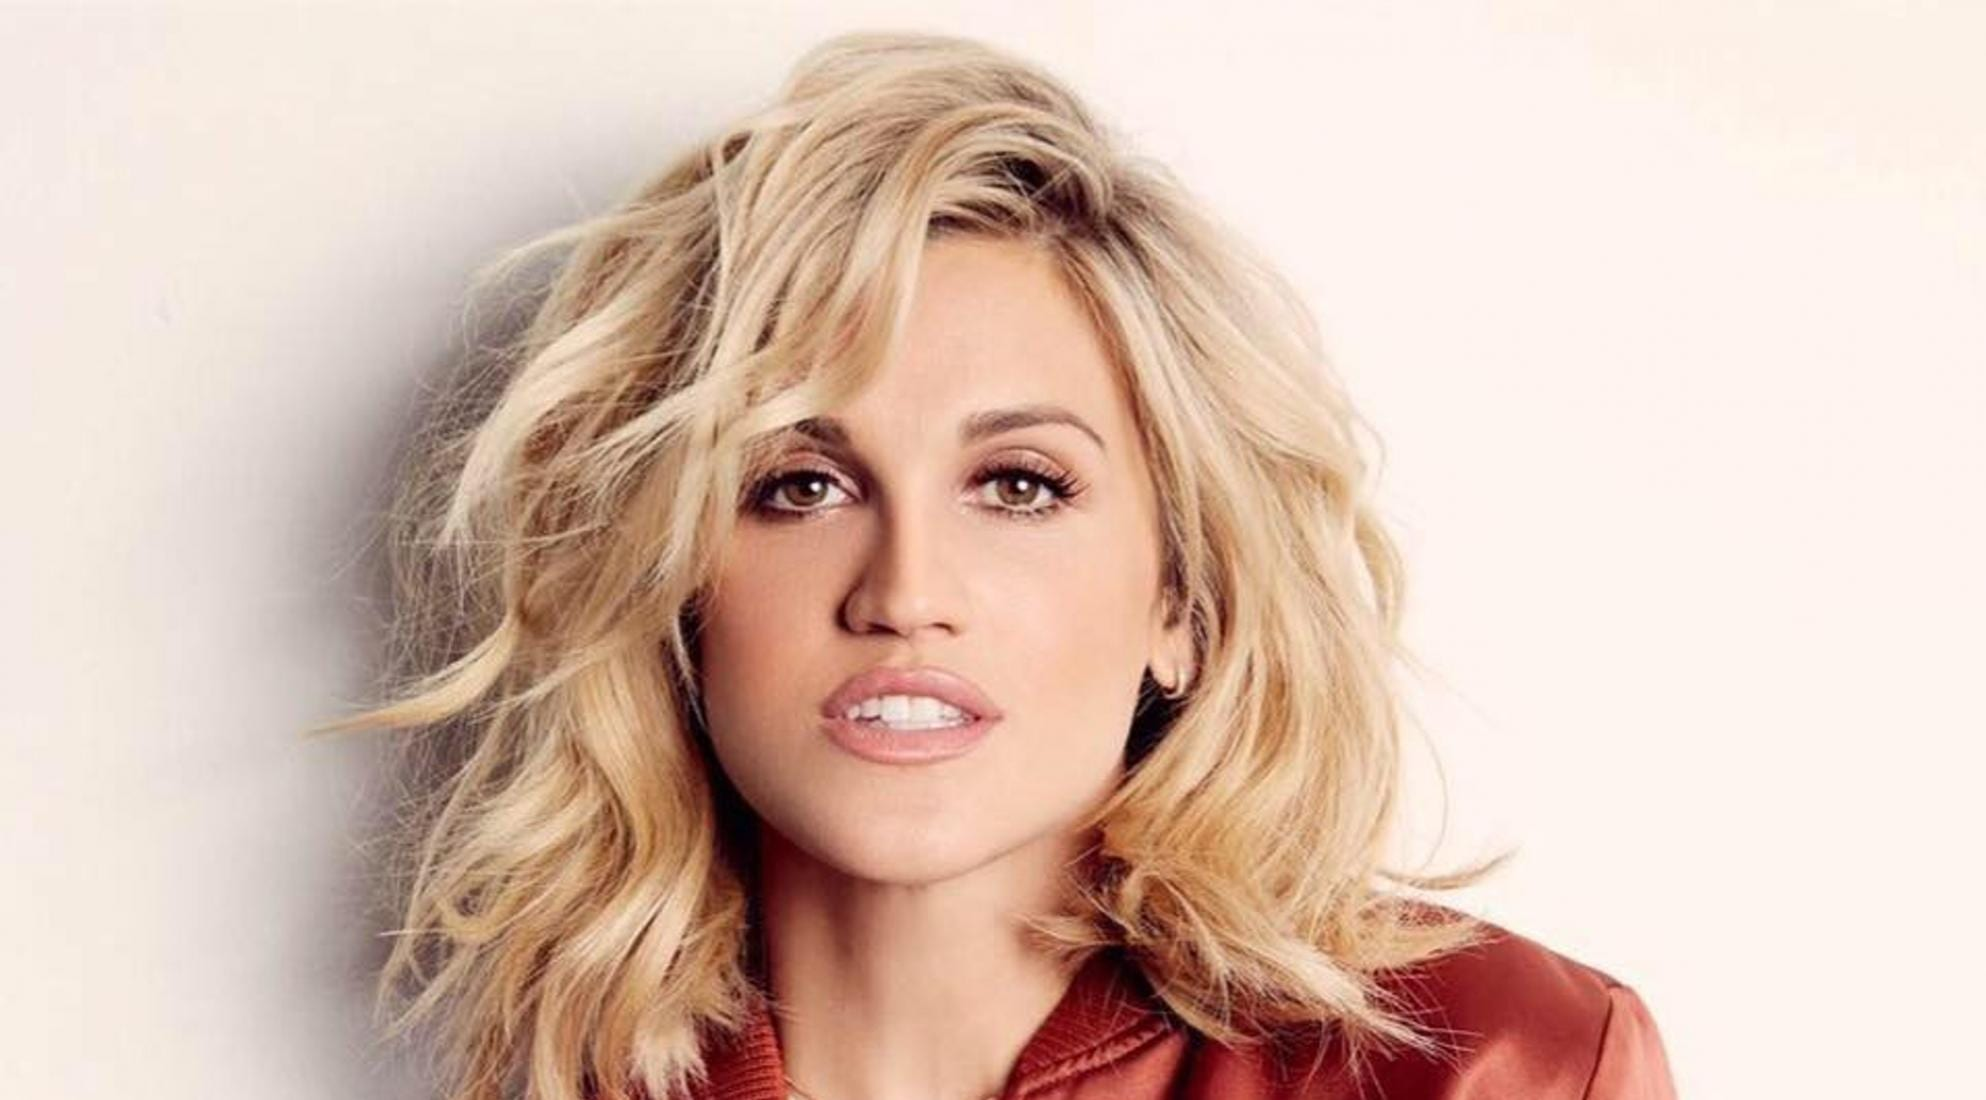 Who is Ashley Roberts daitng?